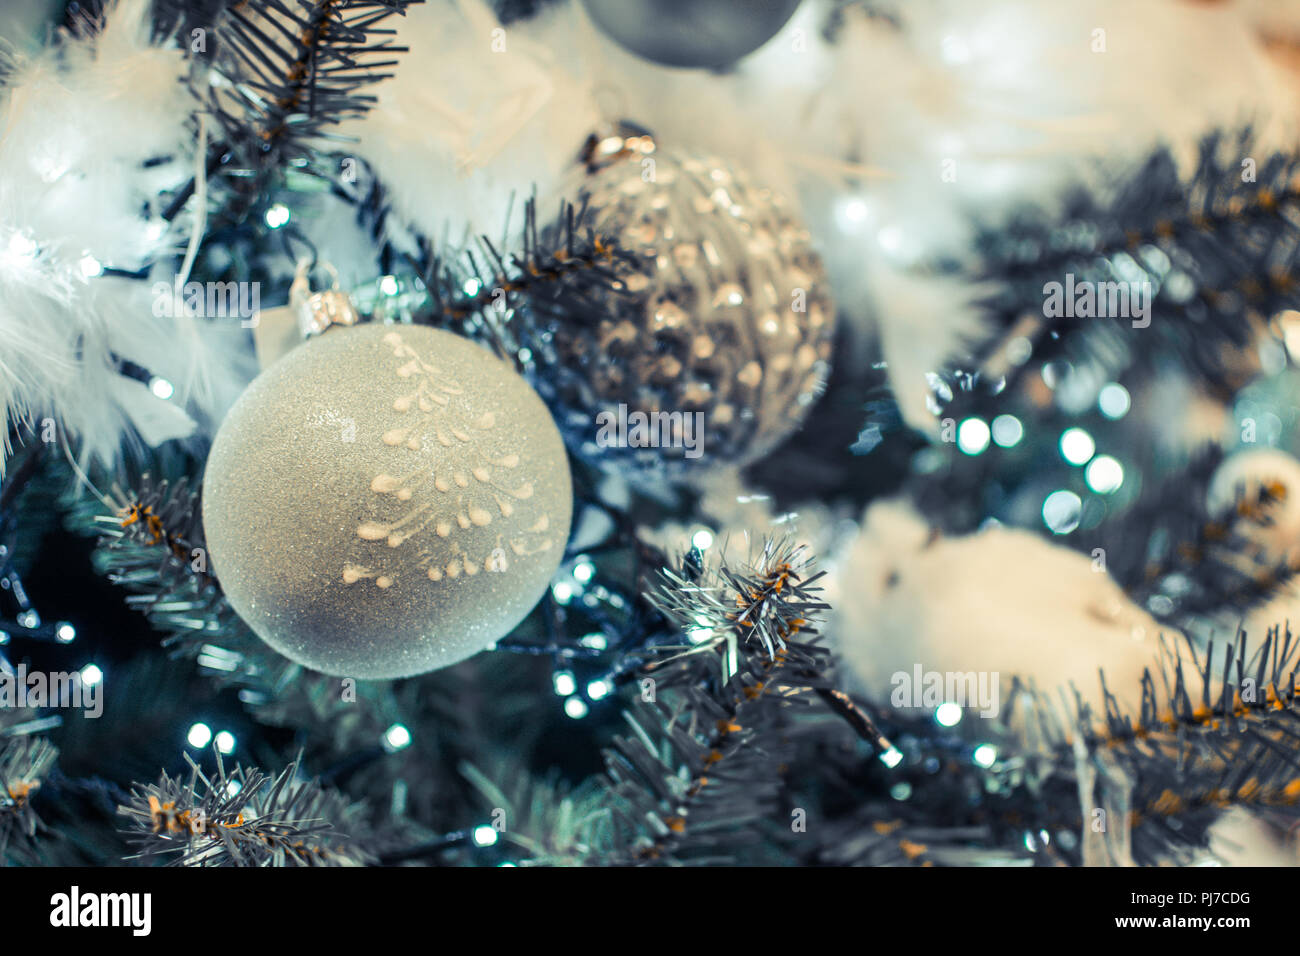 Christmas Tree With Light Green White And Silver Baubles With Feathers And Lights Close Up Selective Focus Stock Photo Alamy